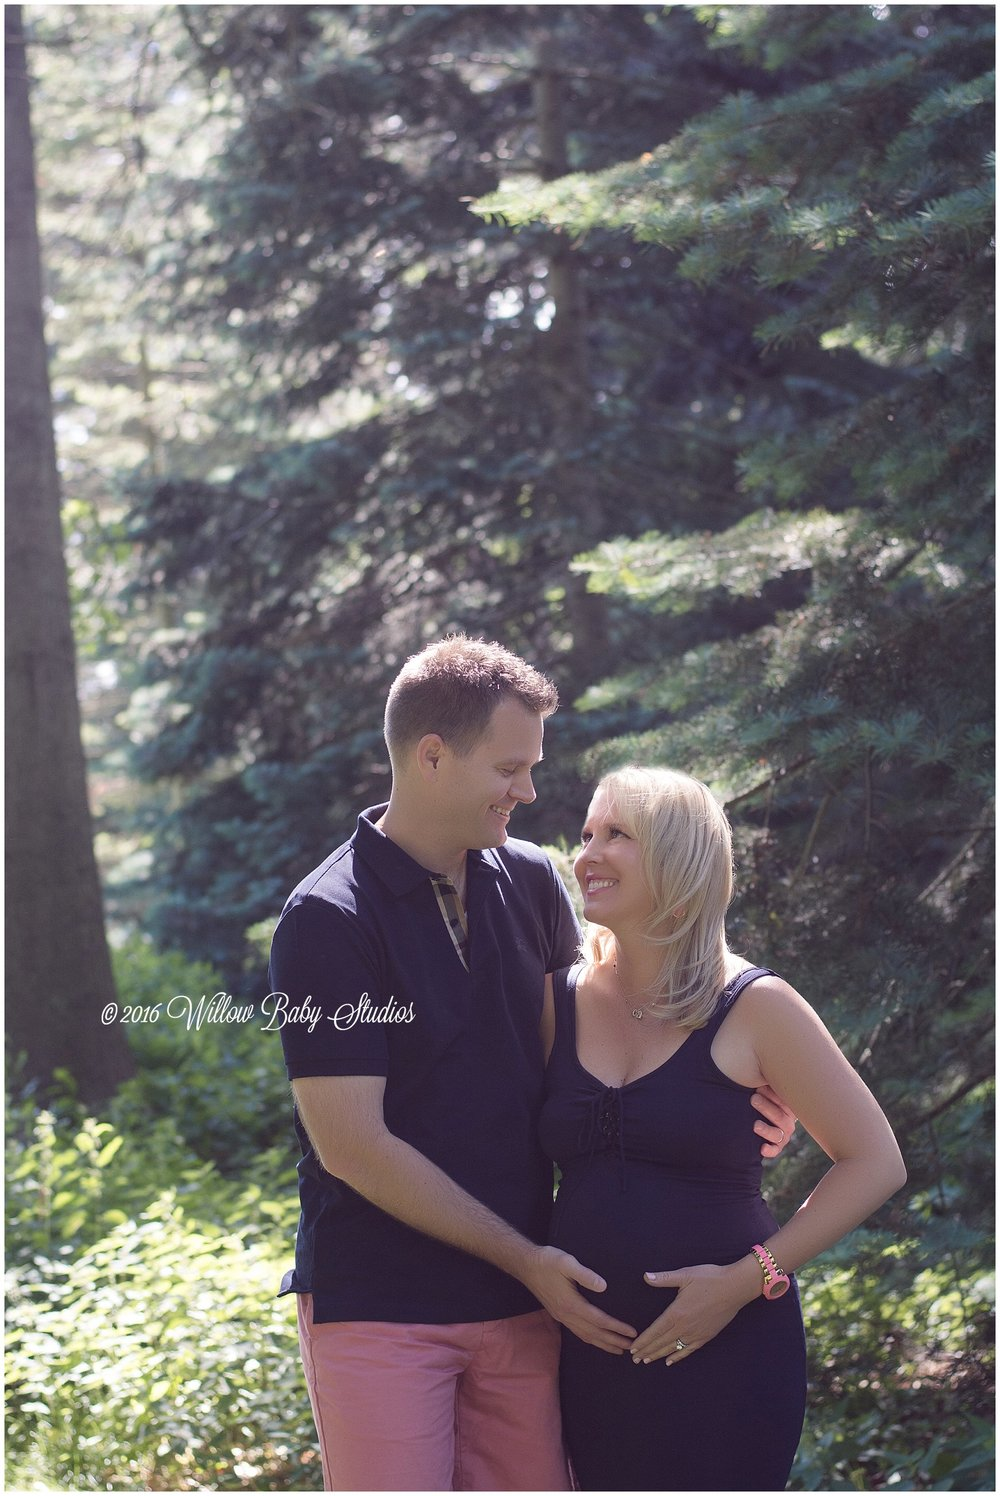 Pregnant-couple-smiling-surrounded-by-trees